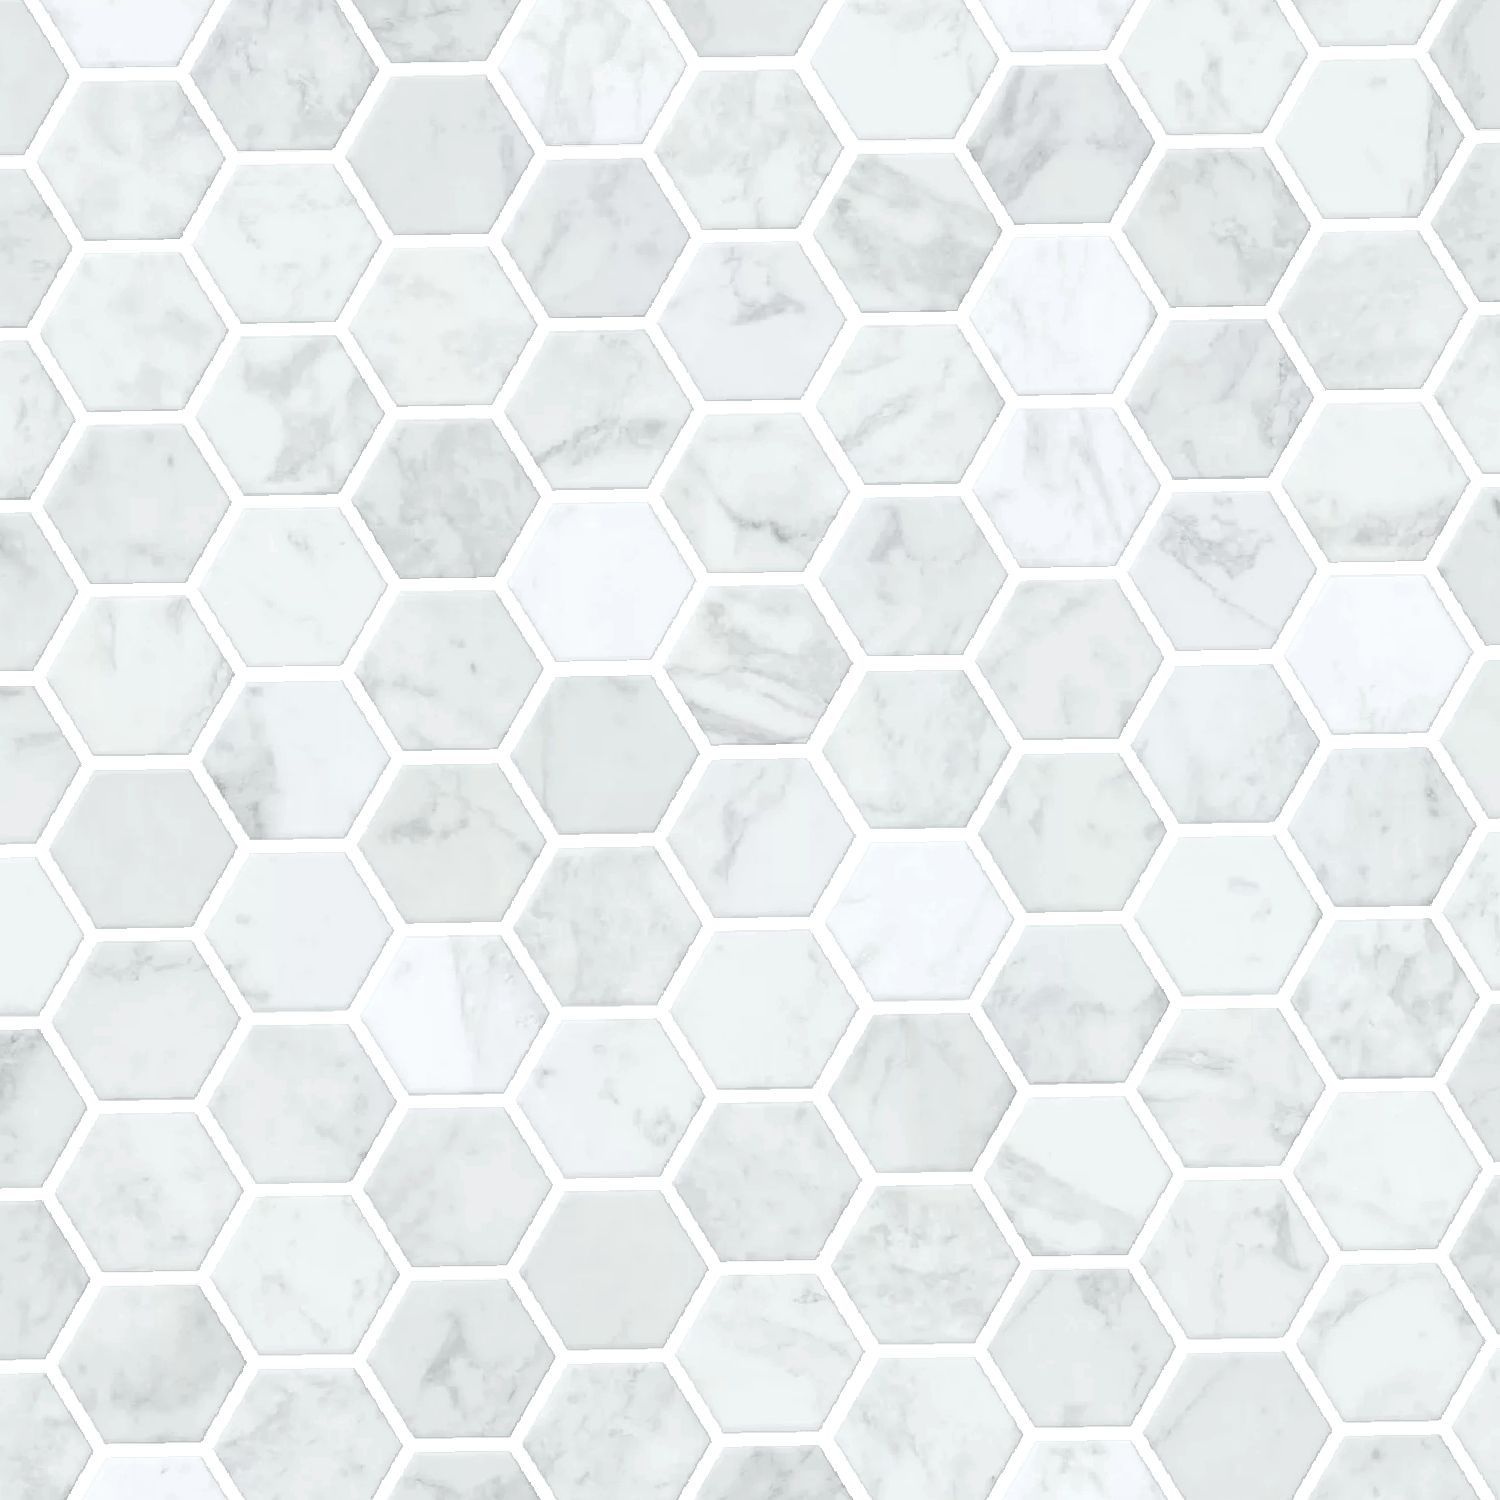 Hexagon Marble Tiles with Transparent Grout